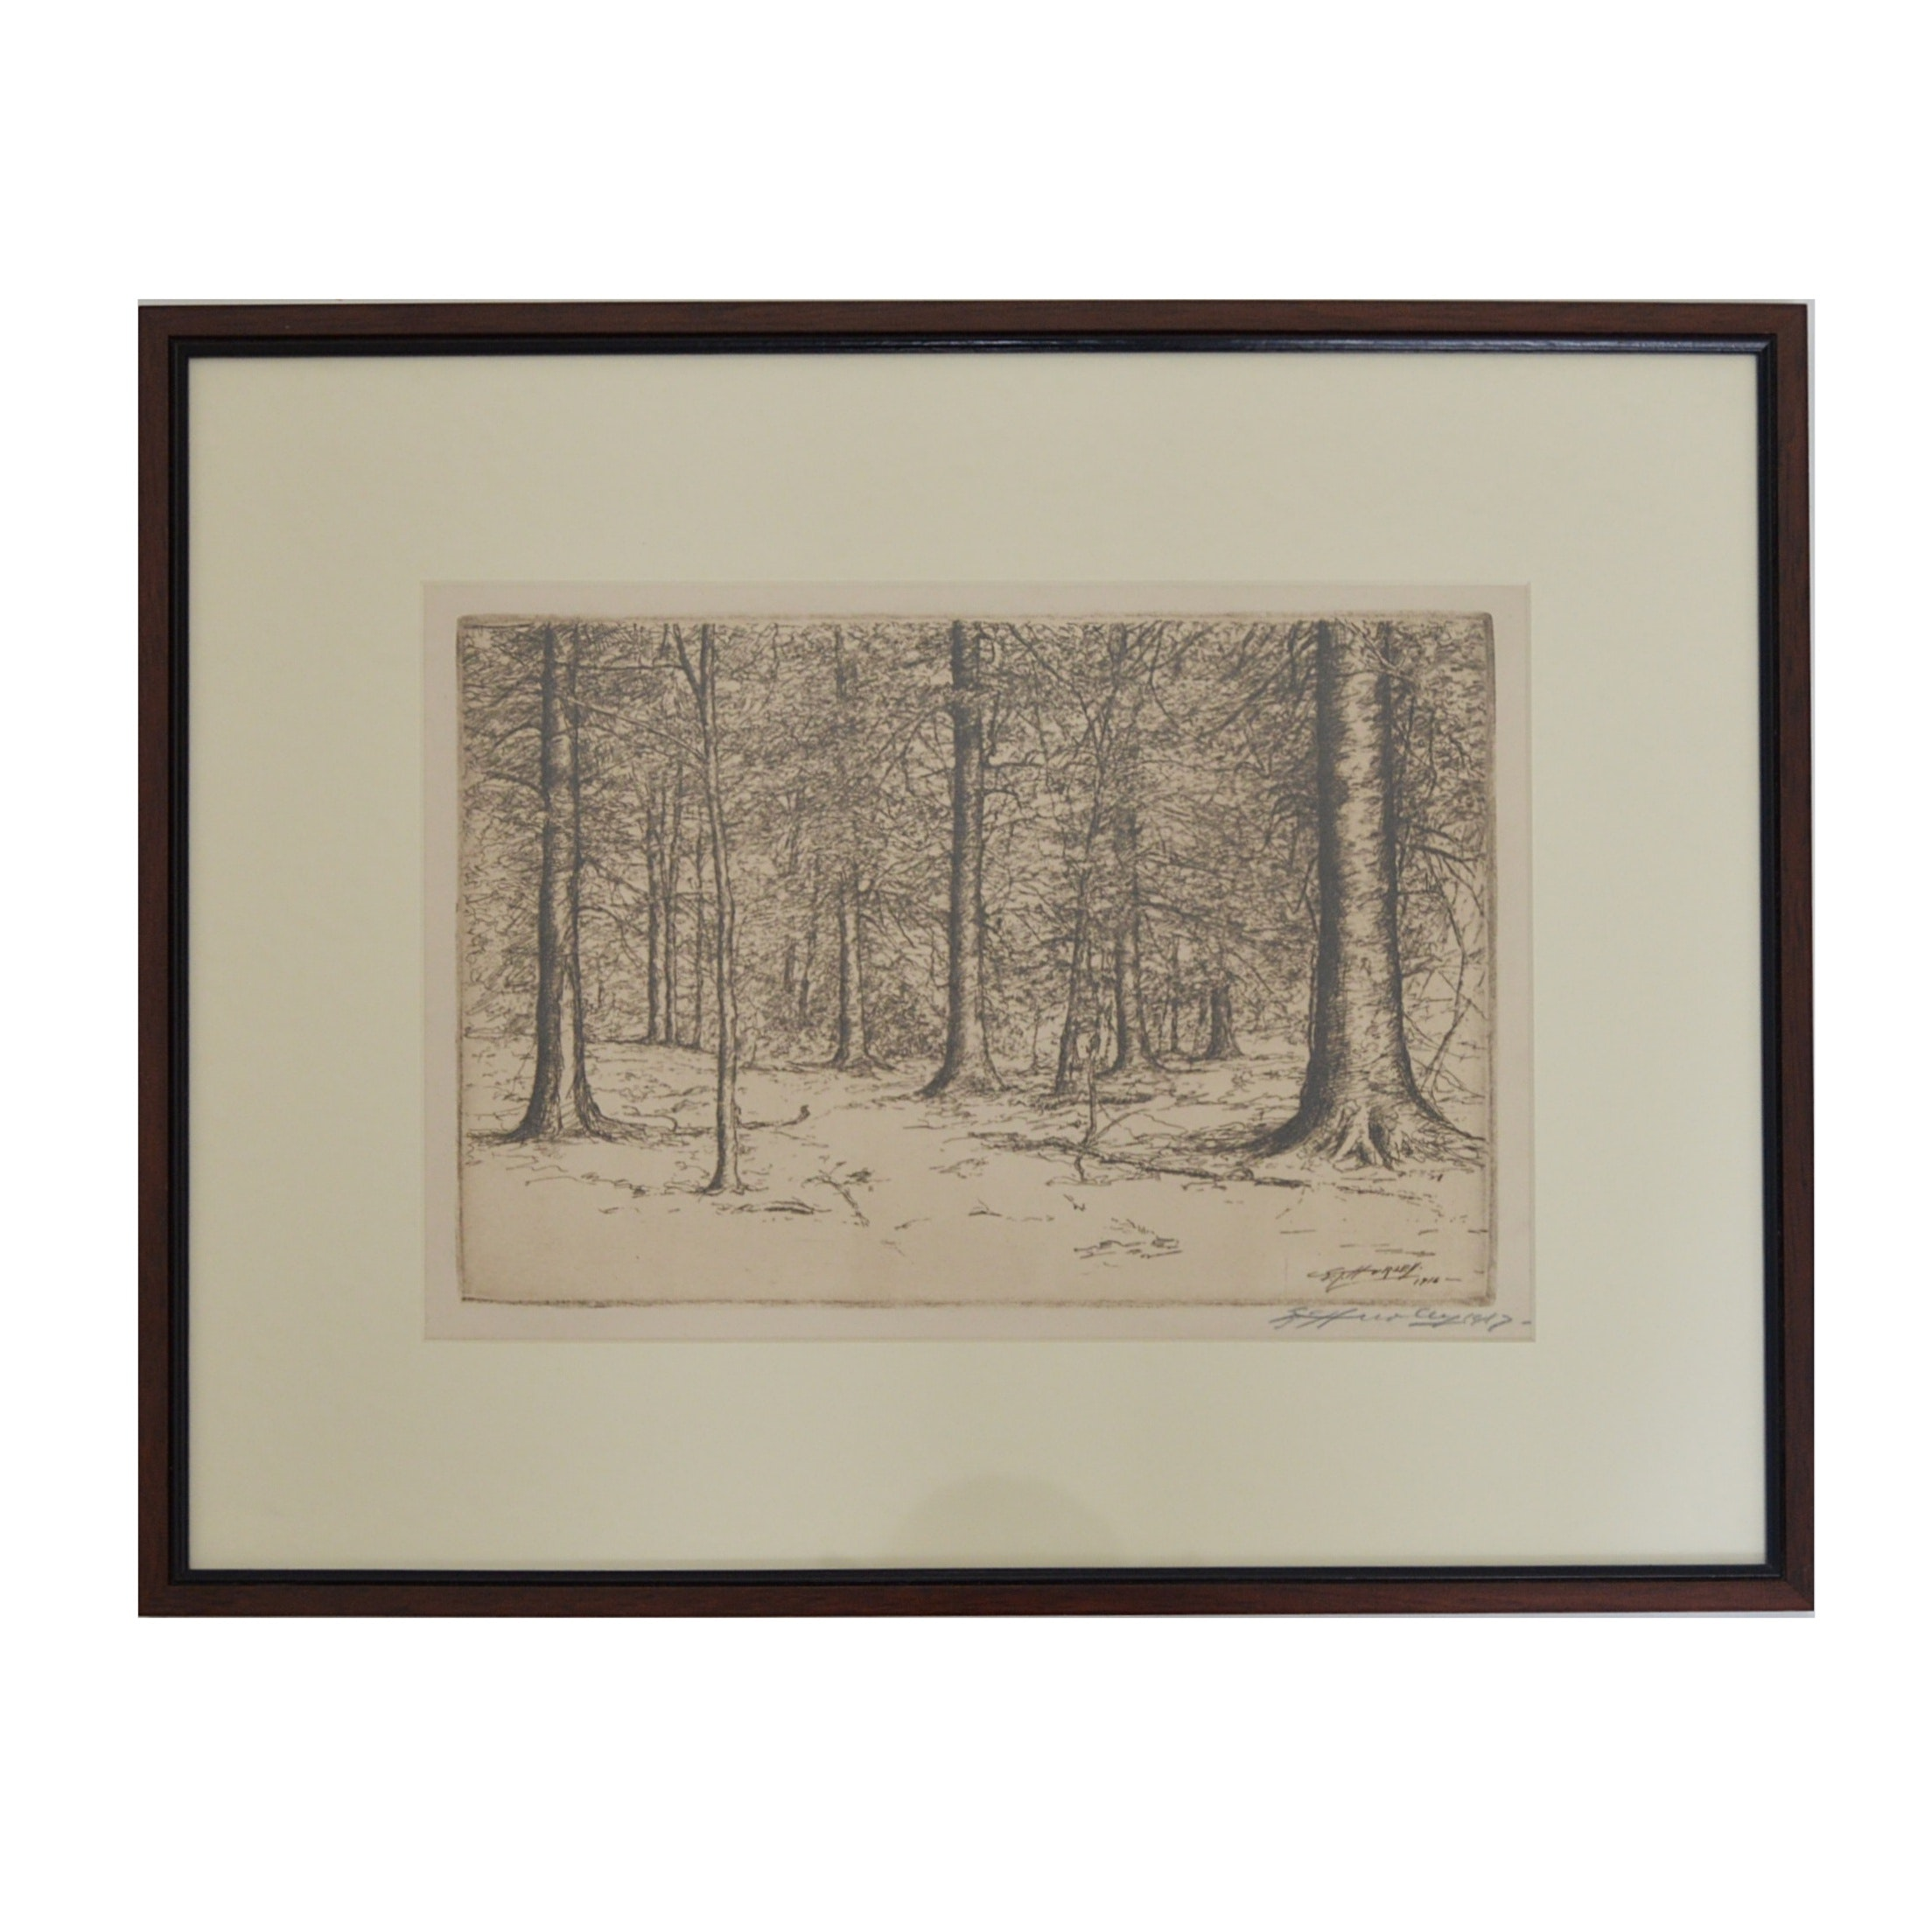 E.T. Hurley 1916 Signed Etching of Trees in a Forest